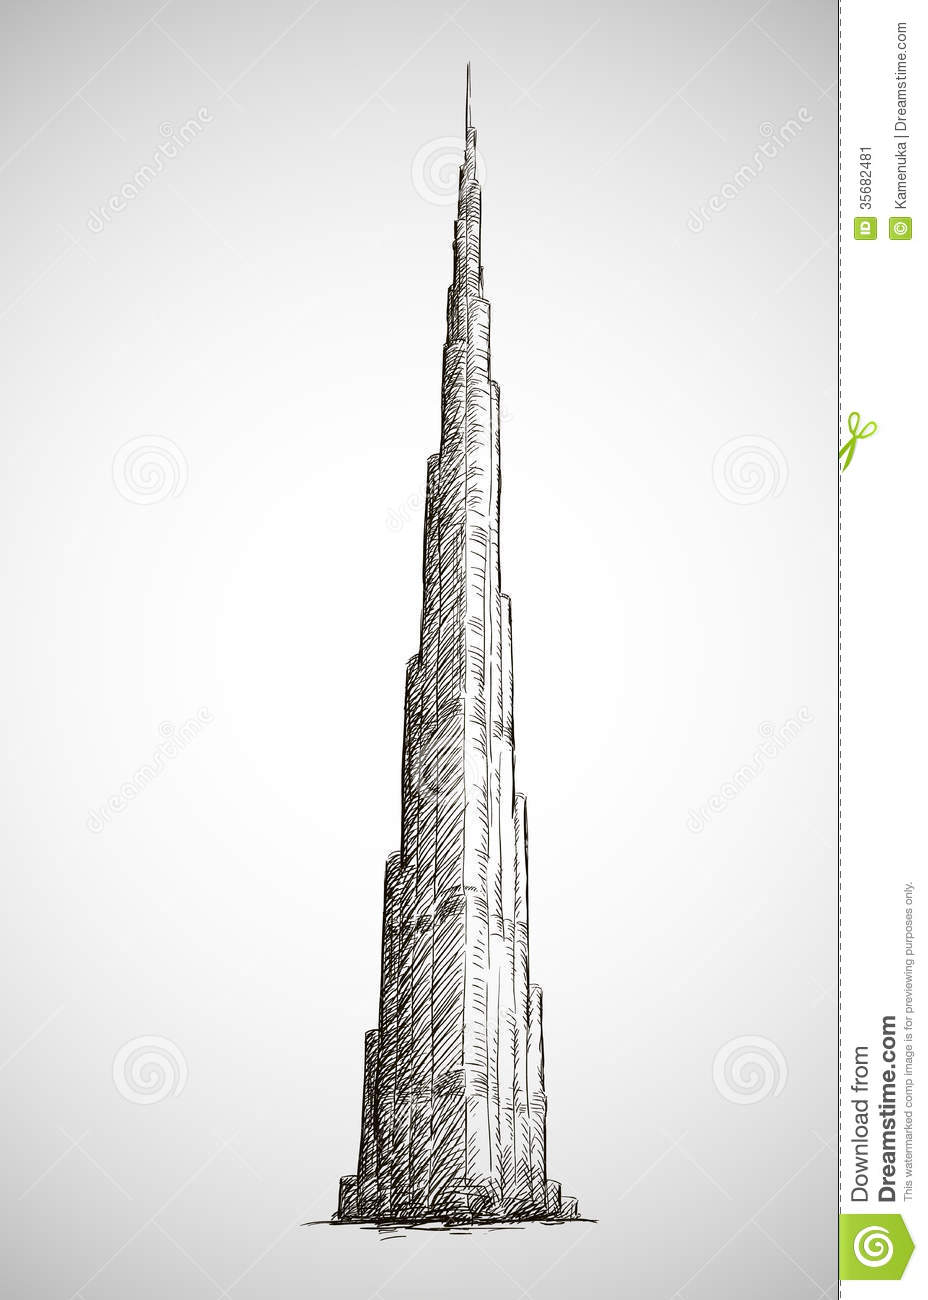 Burj khalifa vector drawing sketch style stock image for Burj khalifa sketch